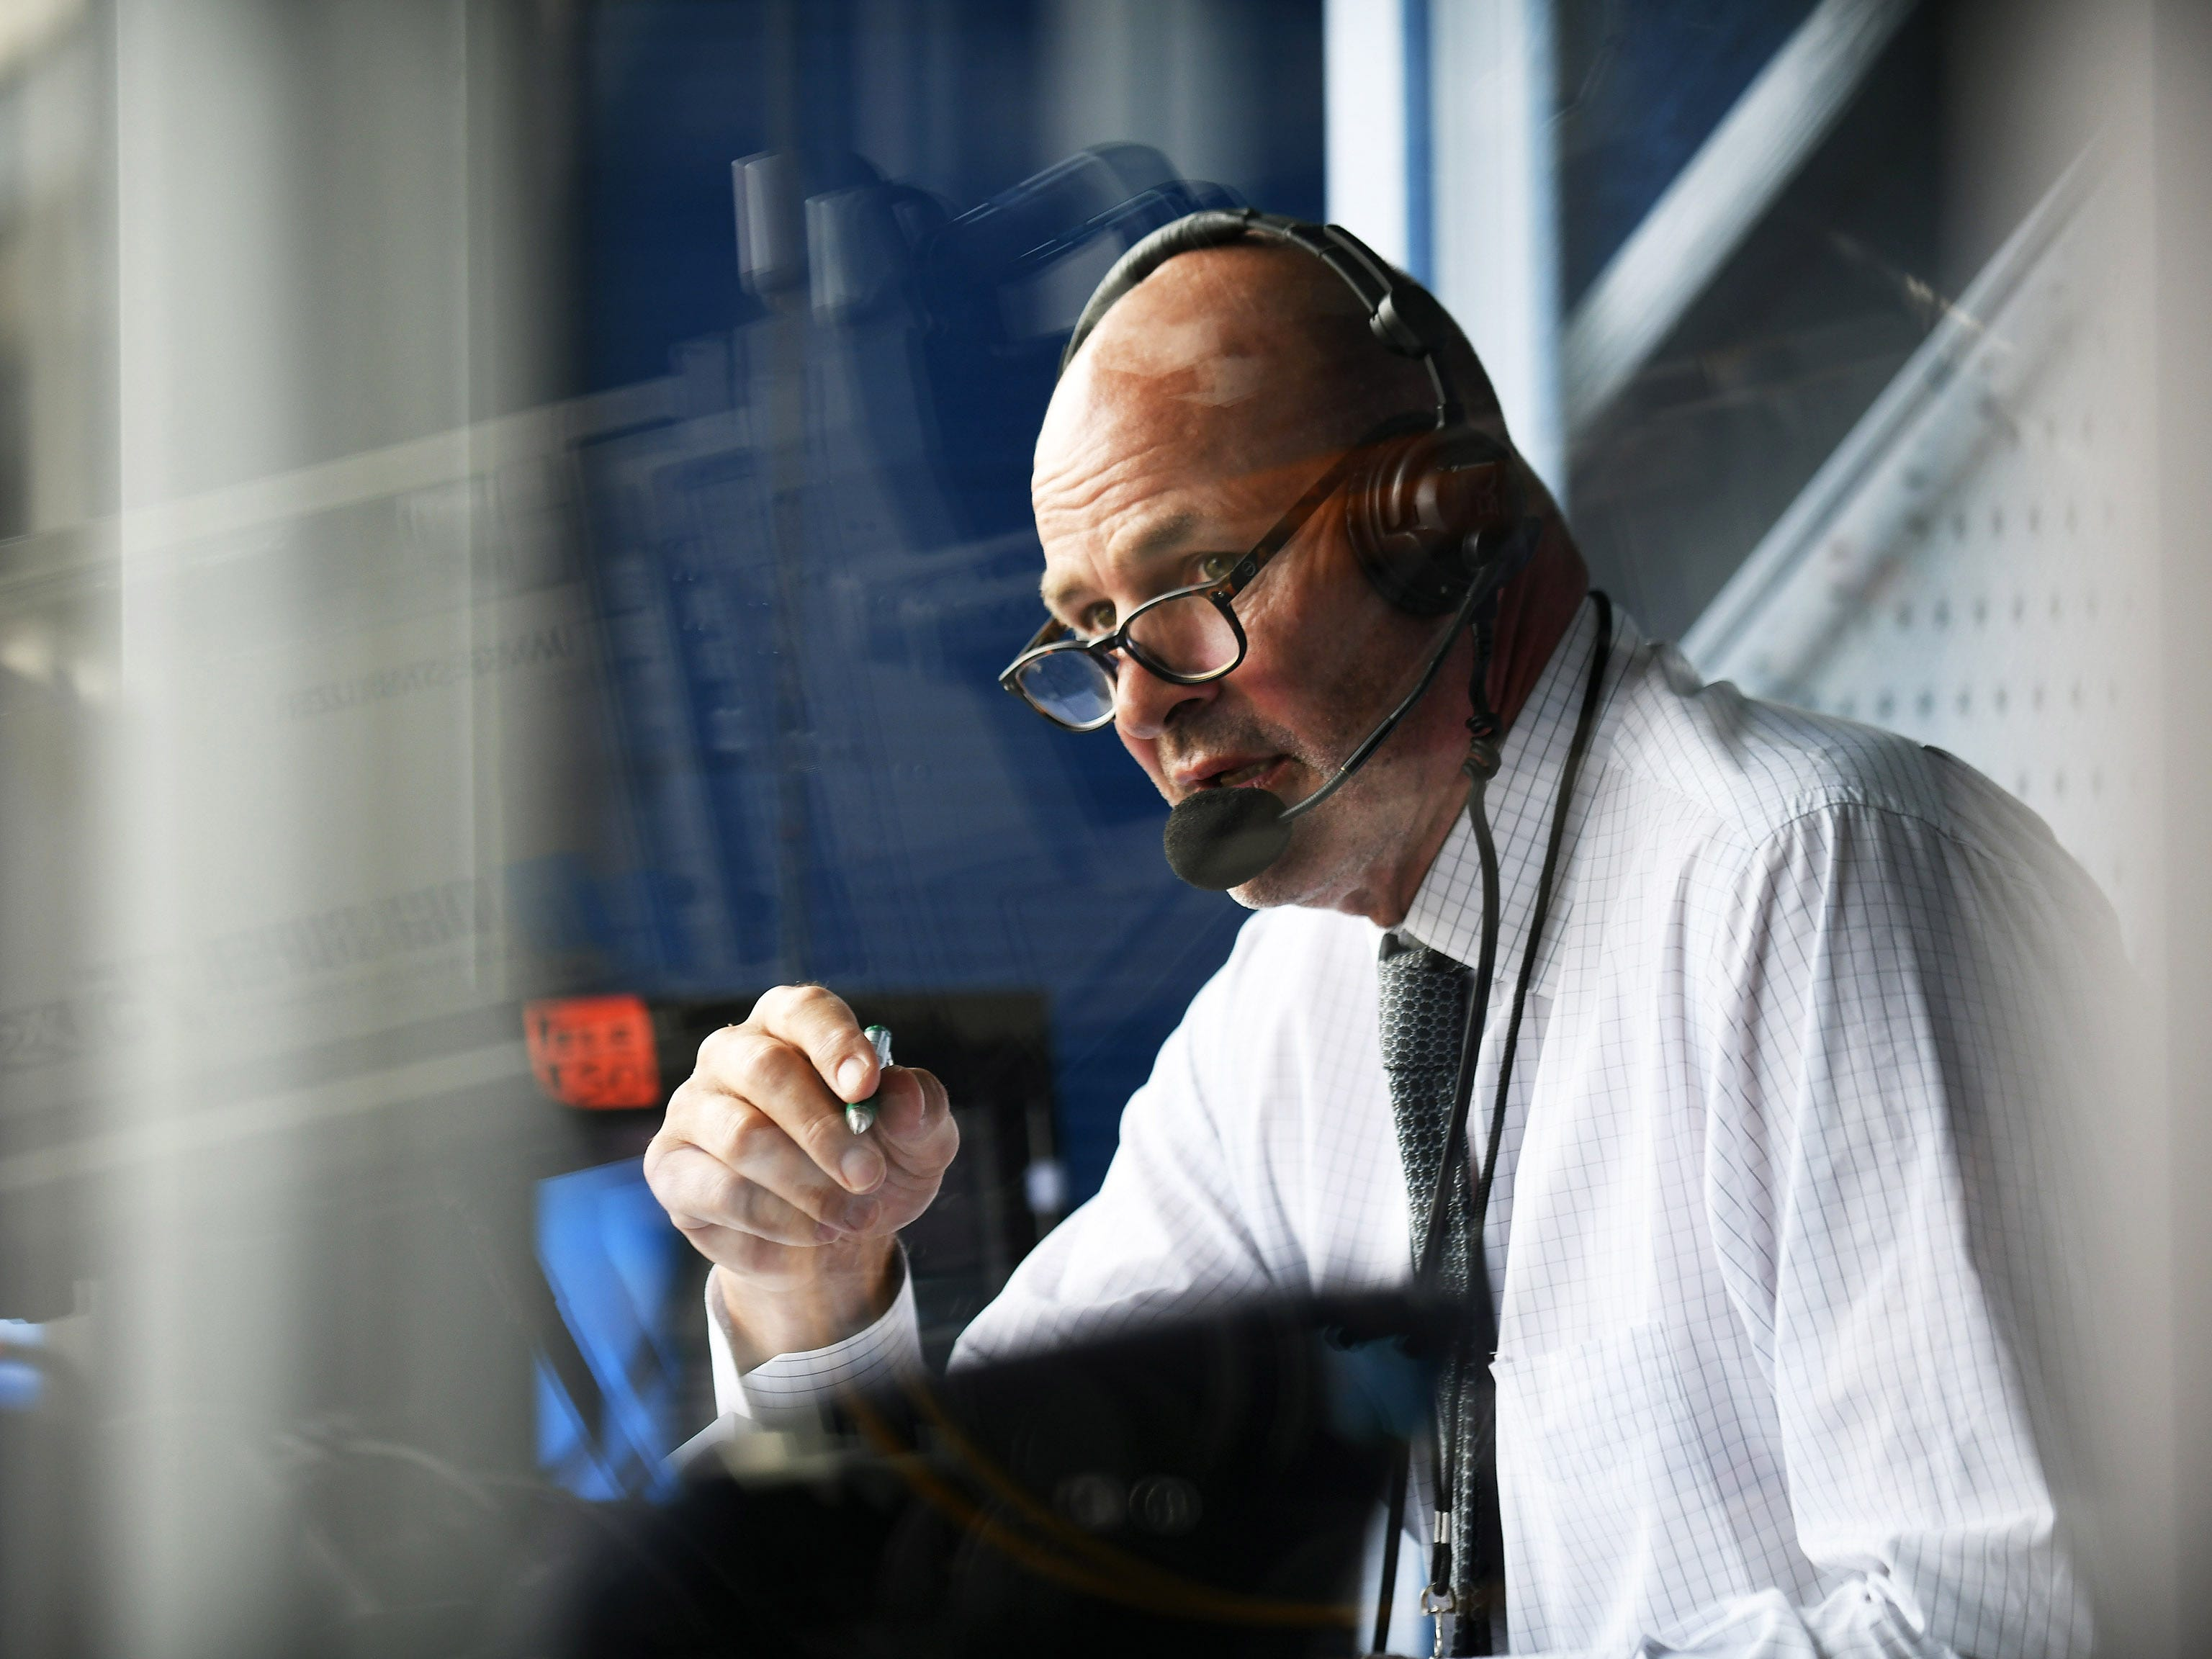 Kirk Gibson works in the FSD booth during a Tigers game against the Boston Red Sox at Comerica Park on July 20, 2018. He controls the symptoms of Parkinson's through medication, exercise and therapy, but he recognizes the deterioration won't stop. Neither will he.